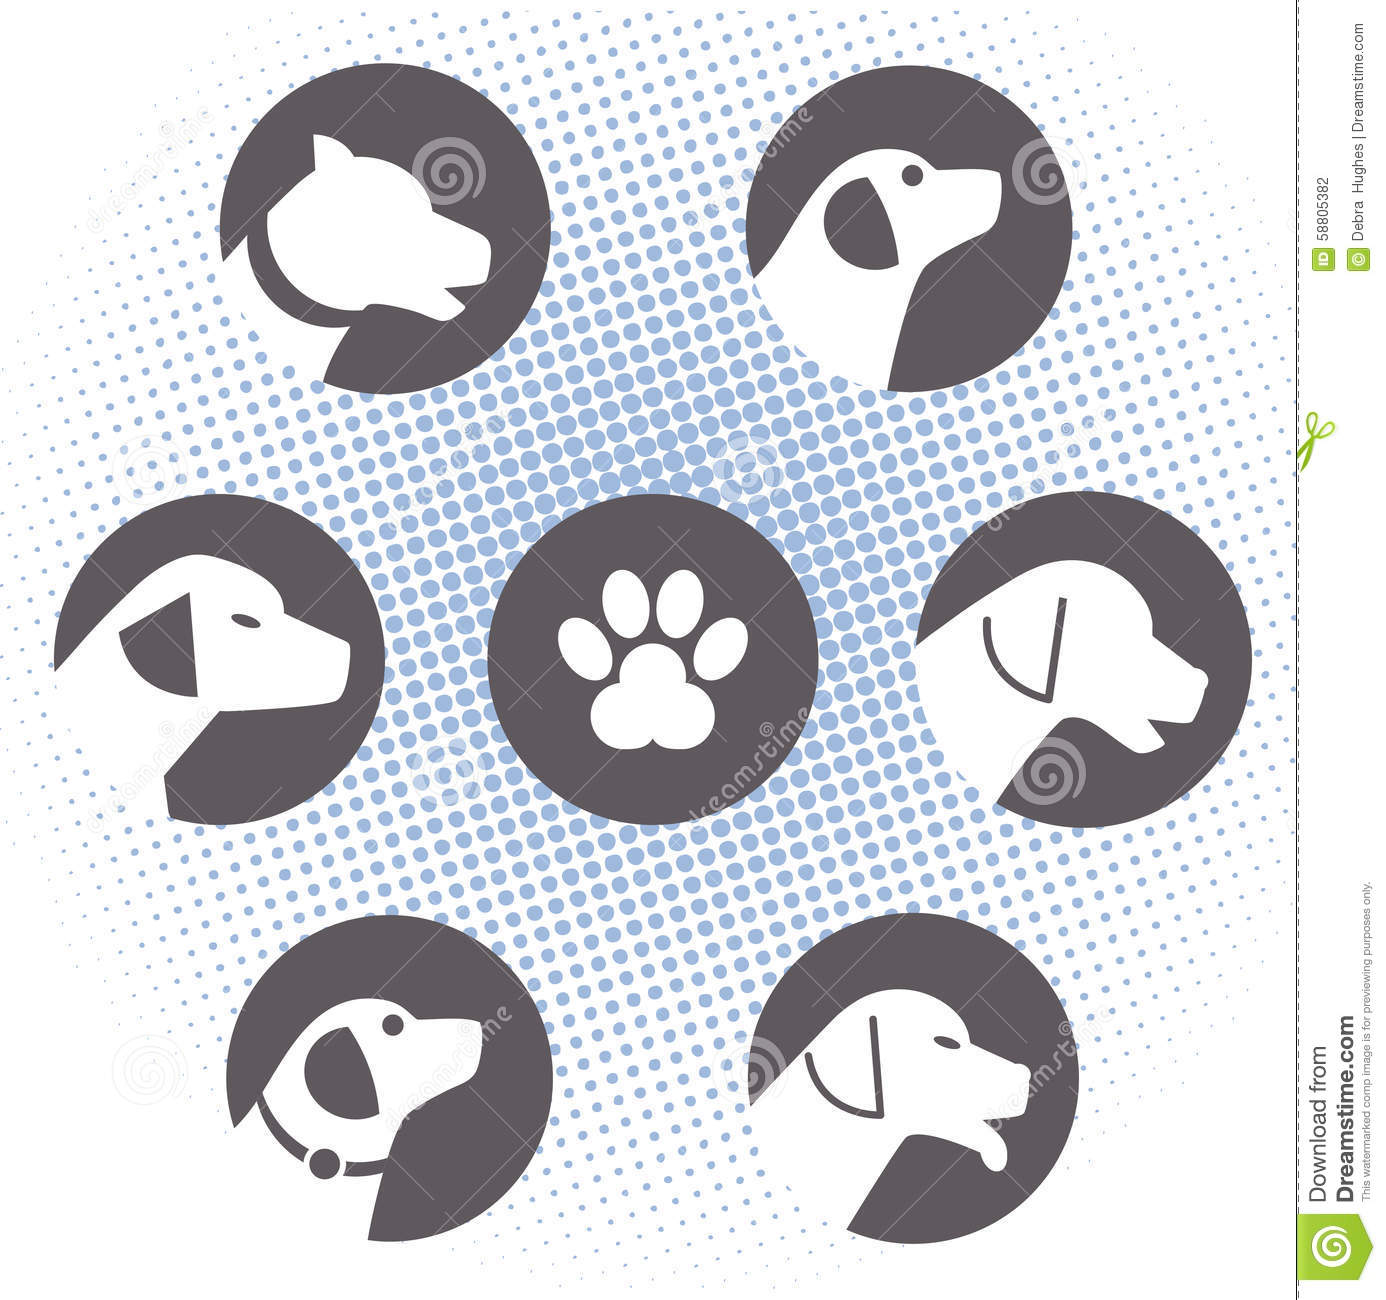 Dog Logos Stock Vector Illustration Of Element Decal 58805382